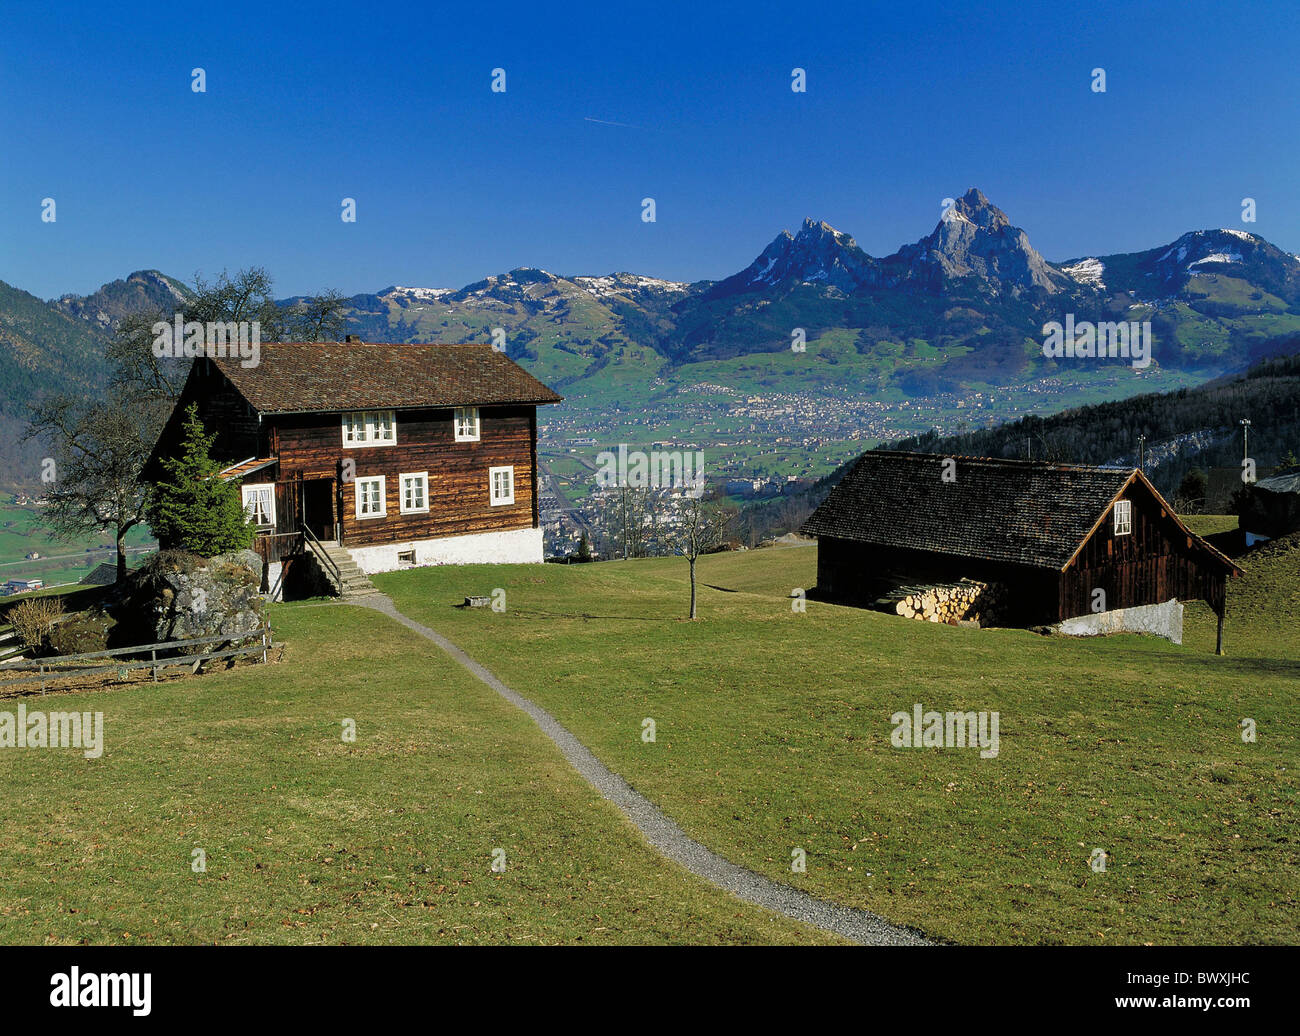 look glance on big great and small little myths houses homes Switzerland Europe Schwyz mountain Seelis - Stock Image